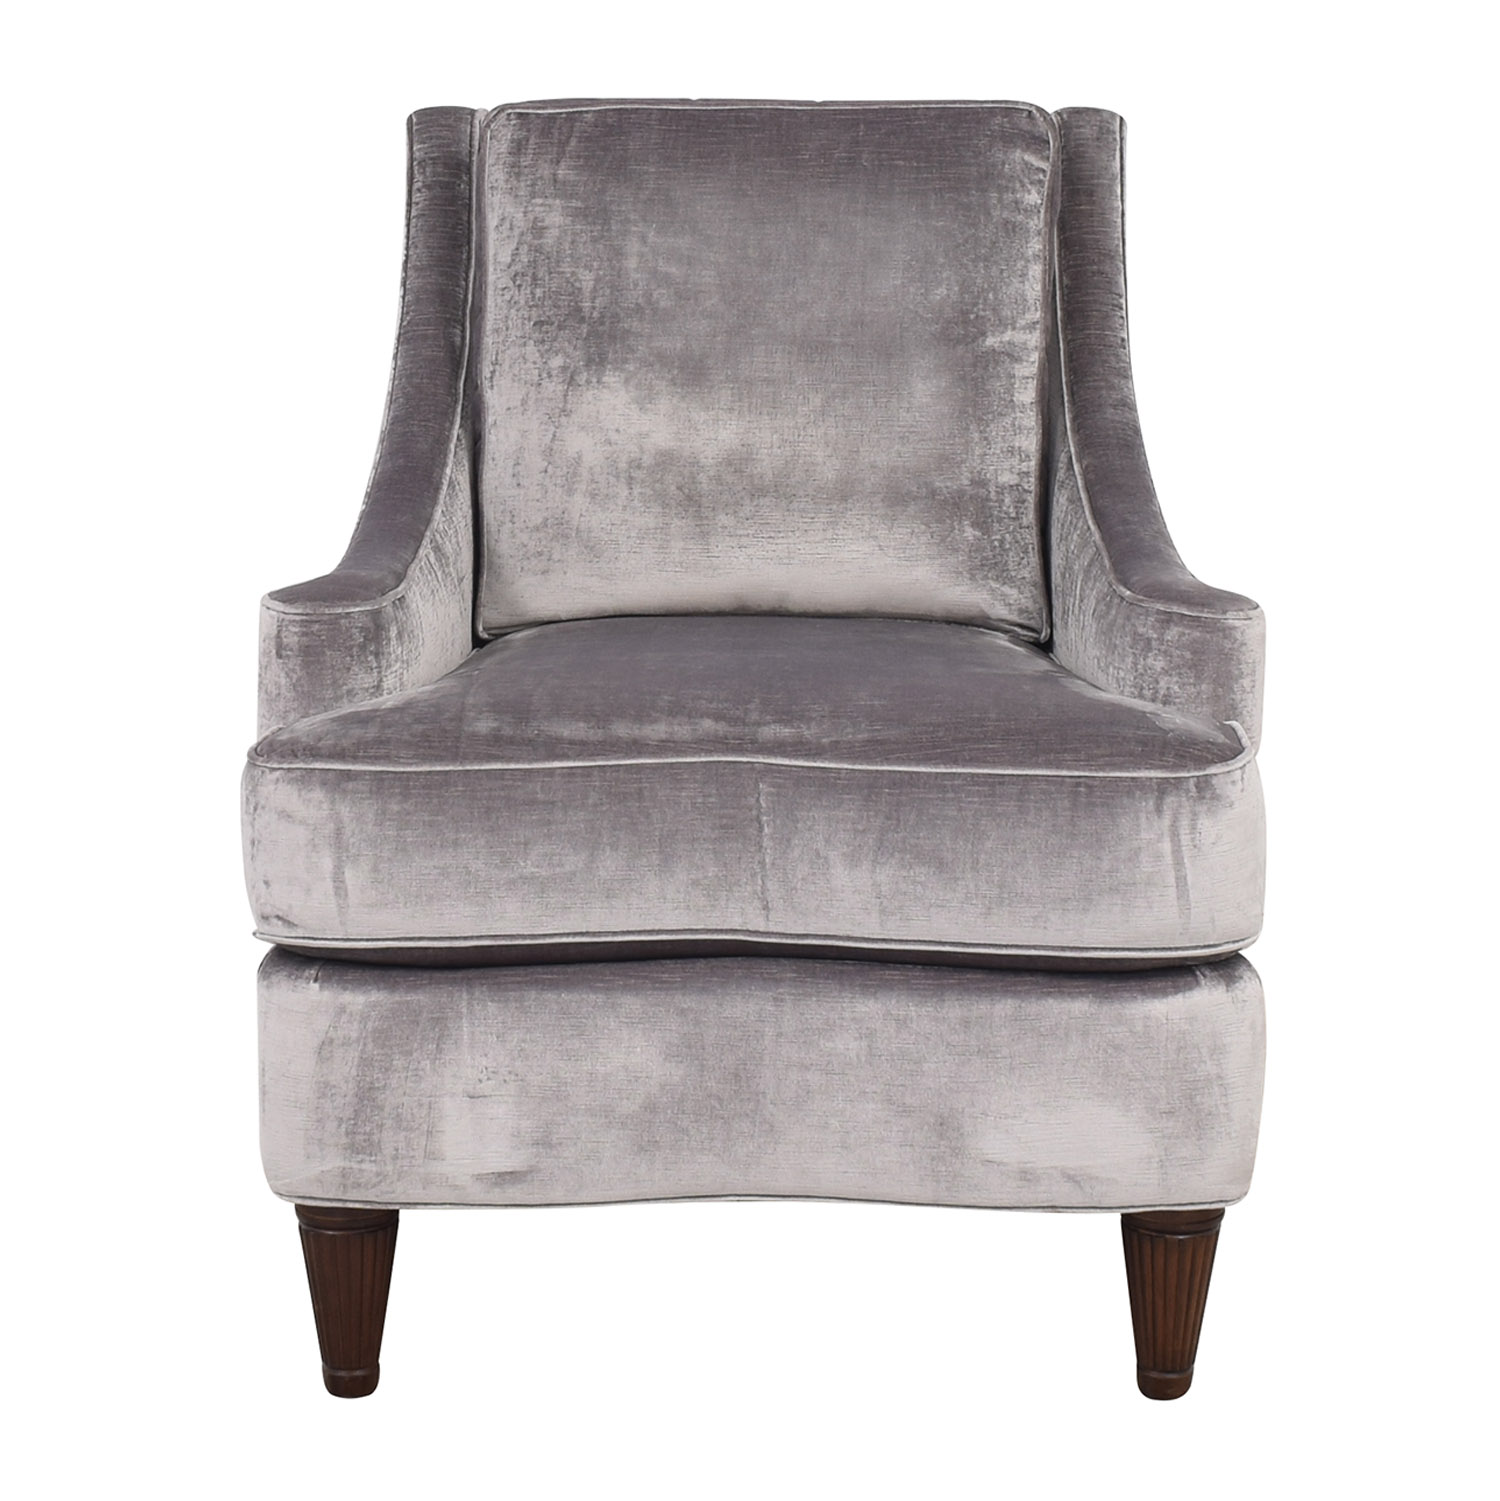 Thomasville Thomasville Grey Velvet Chair